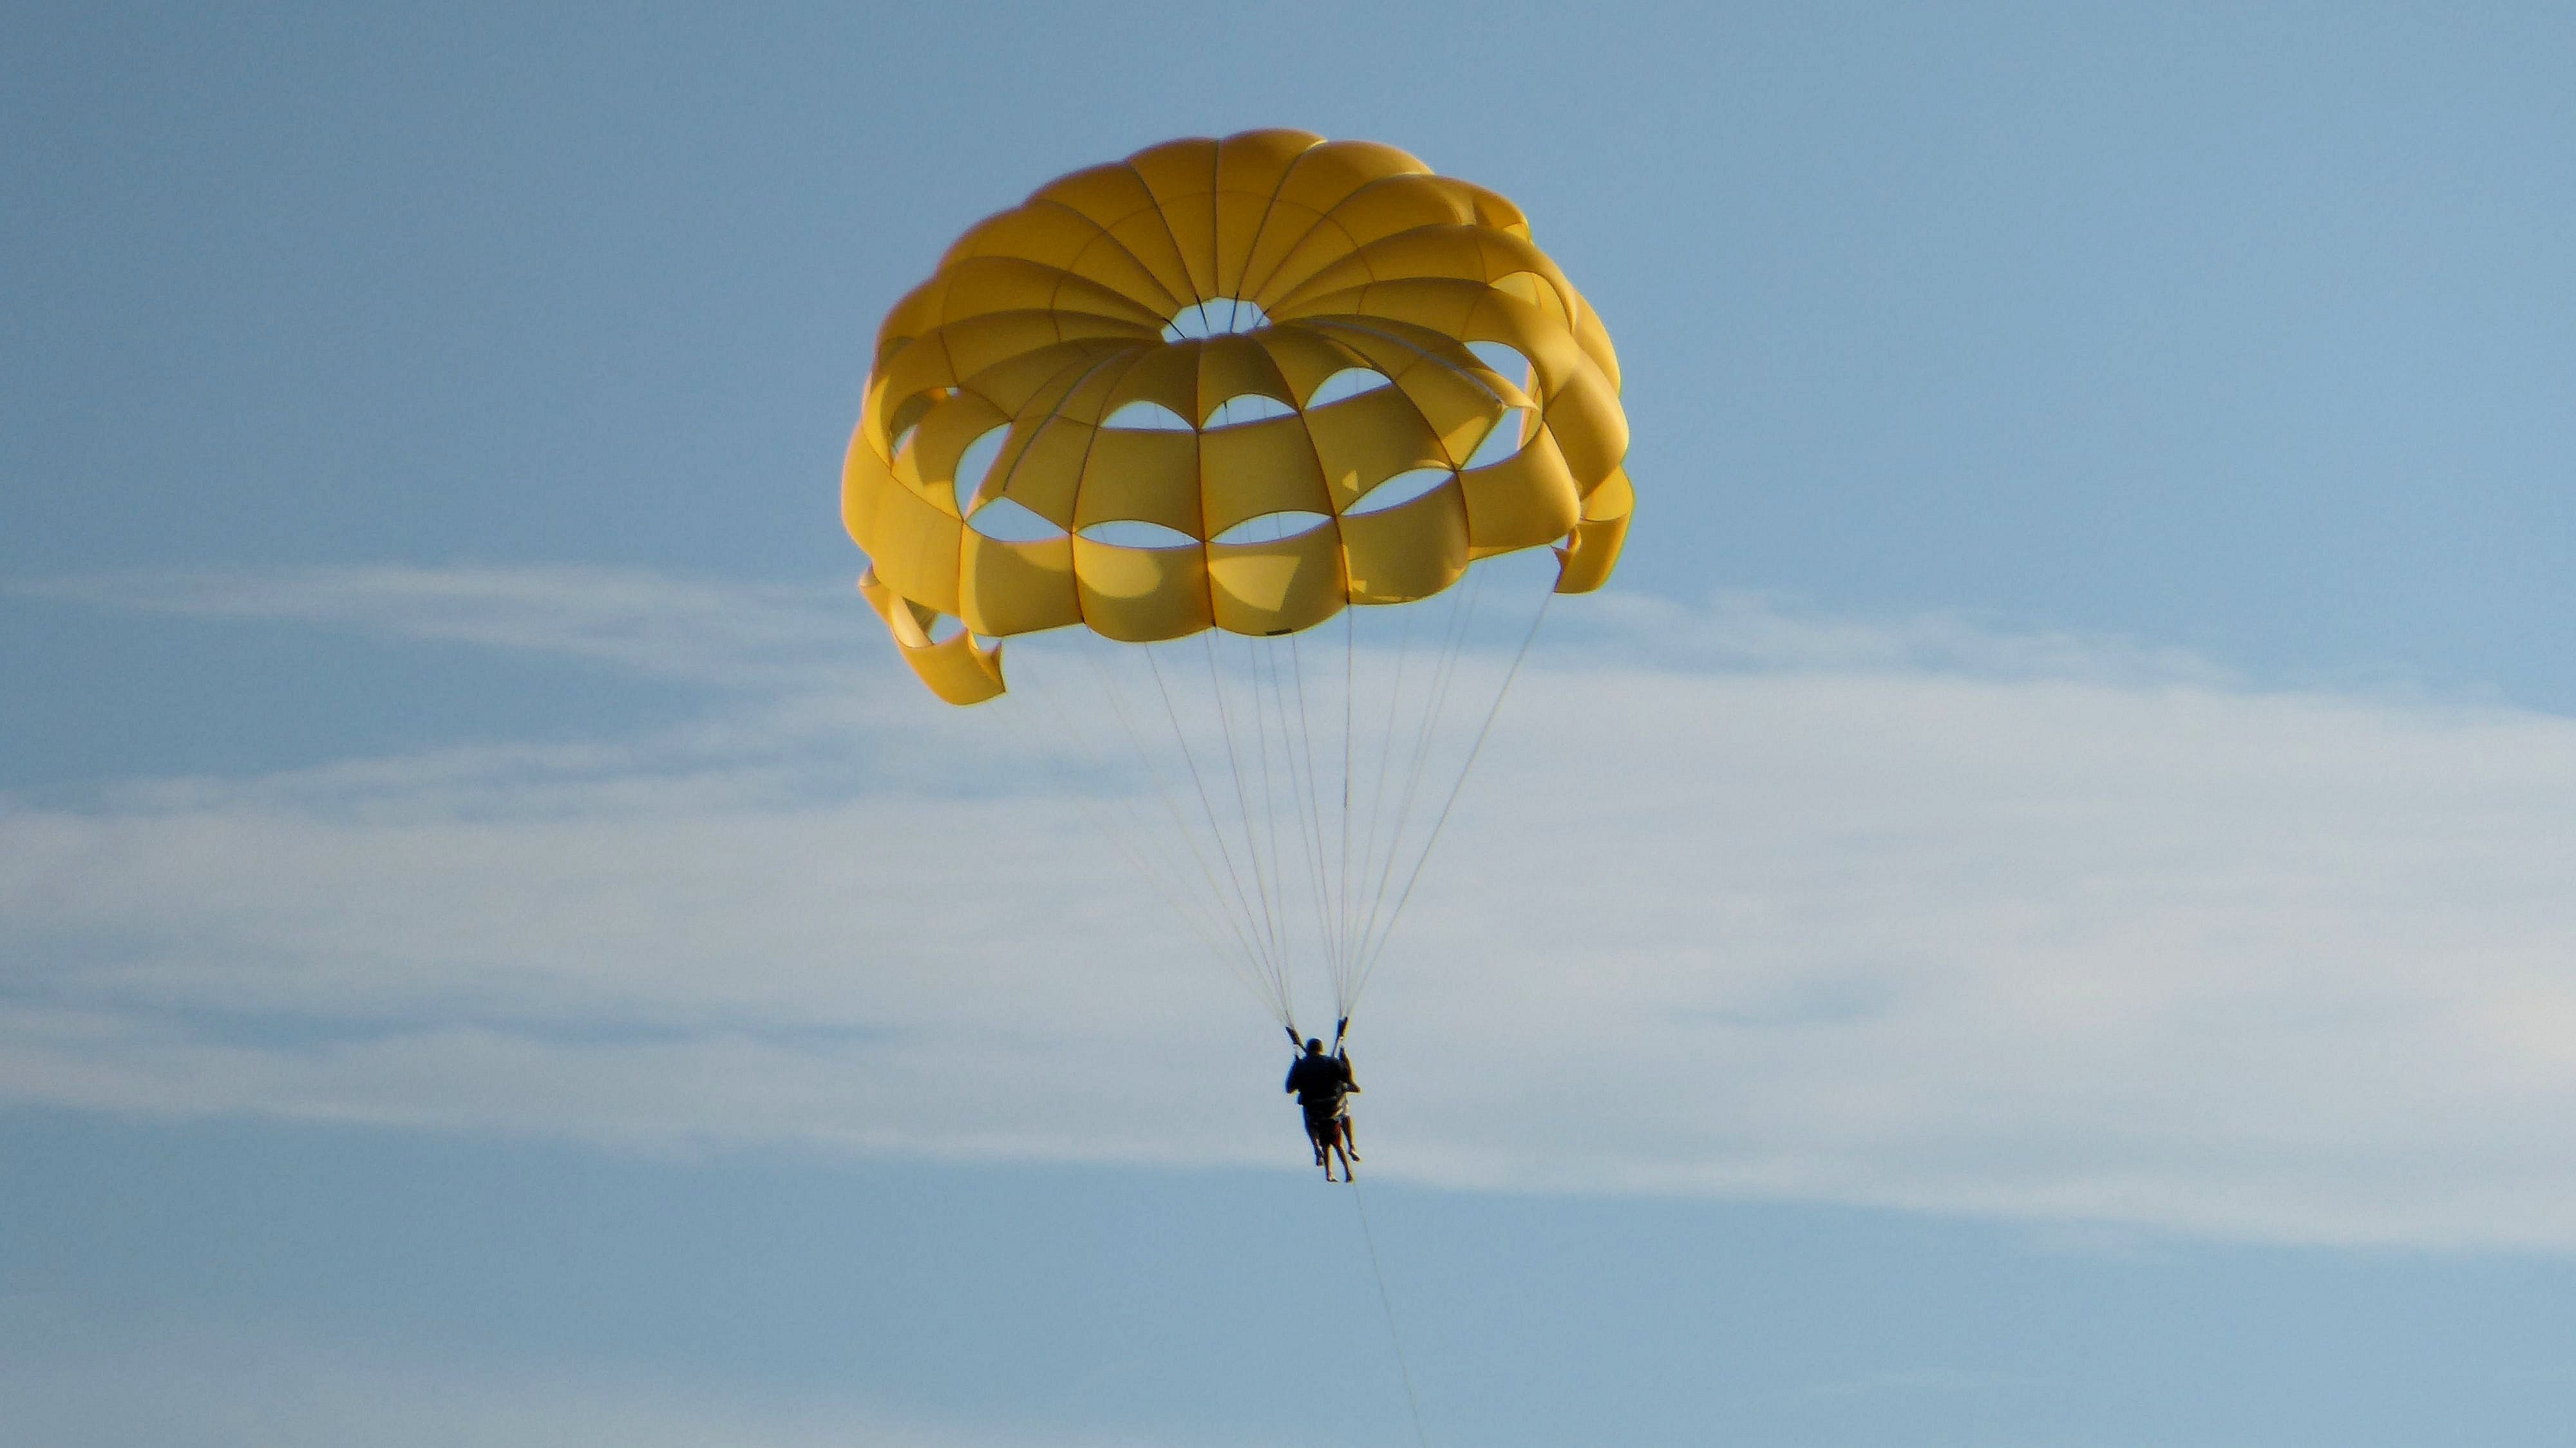 person on parachute